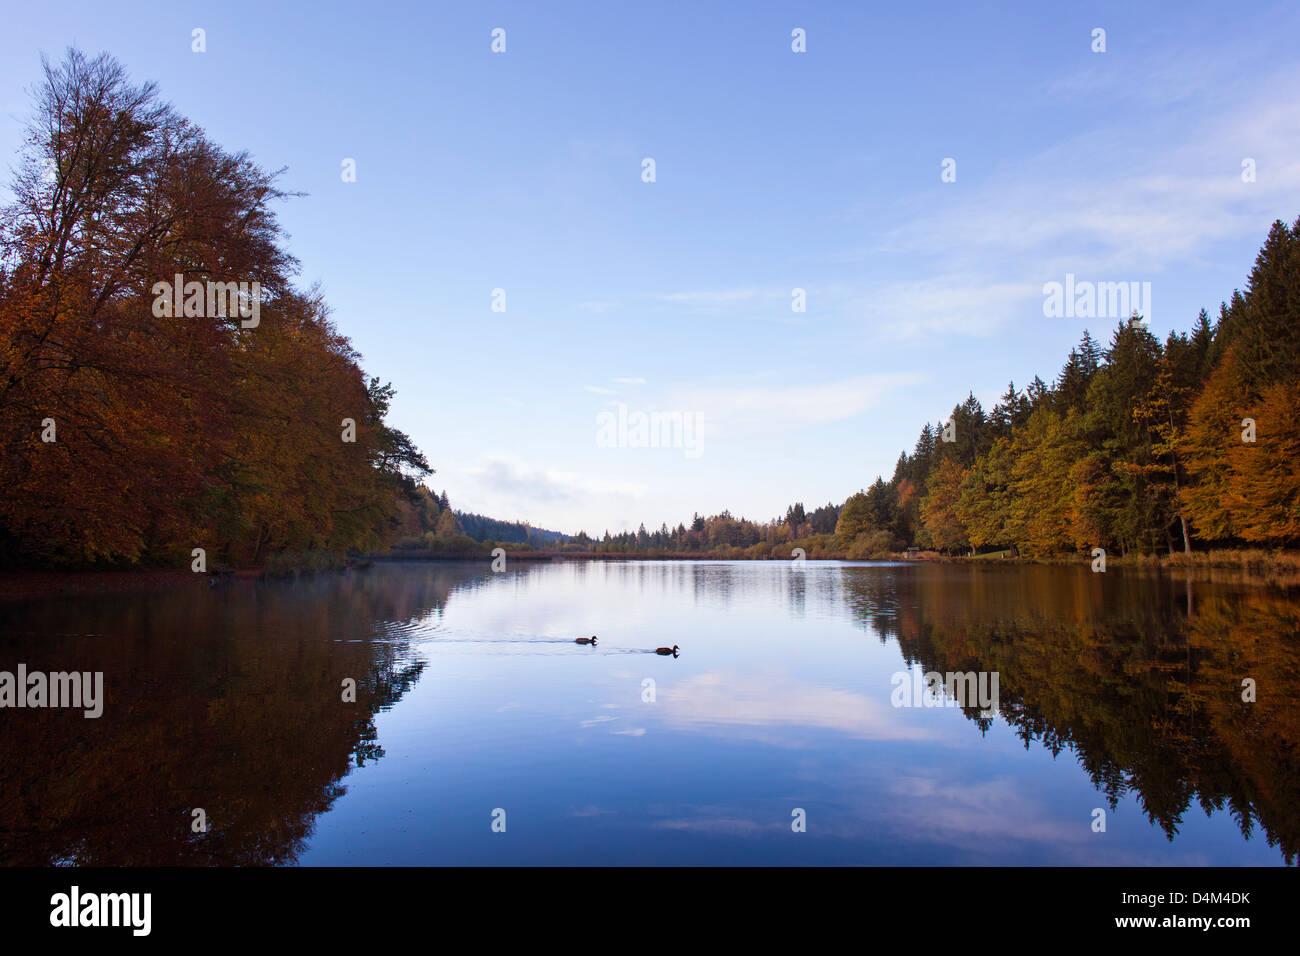 Trees reflected in still rural lake - Stock Image